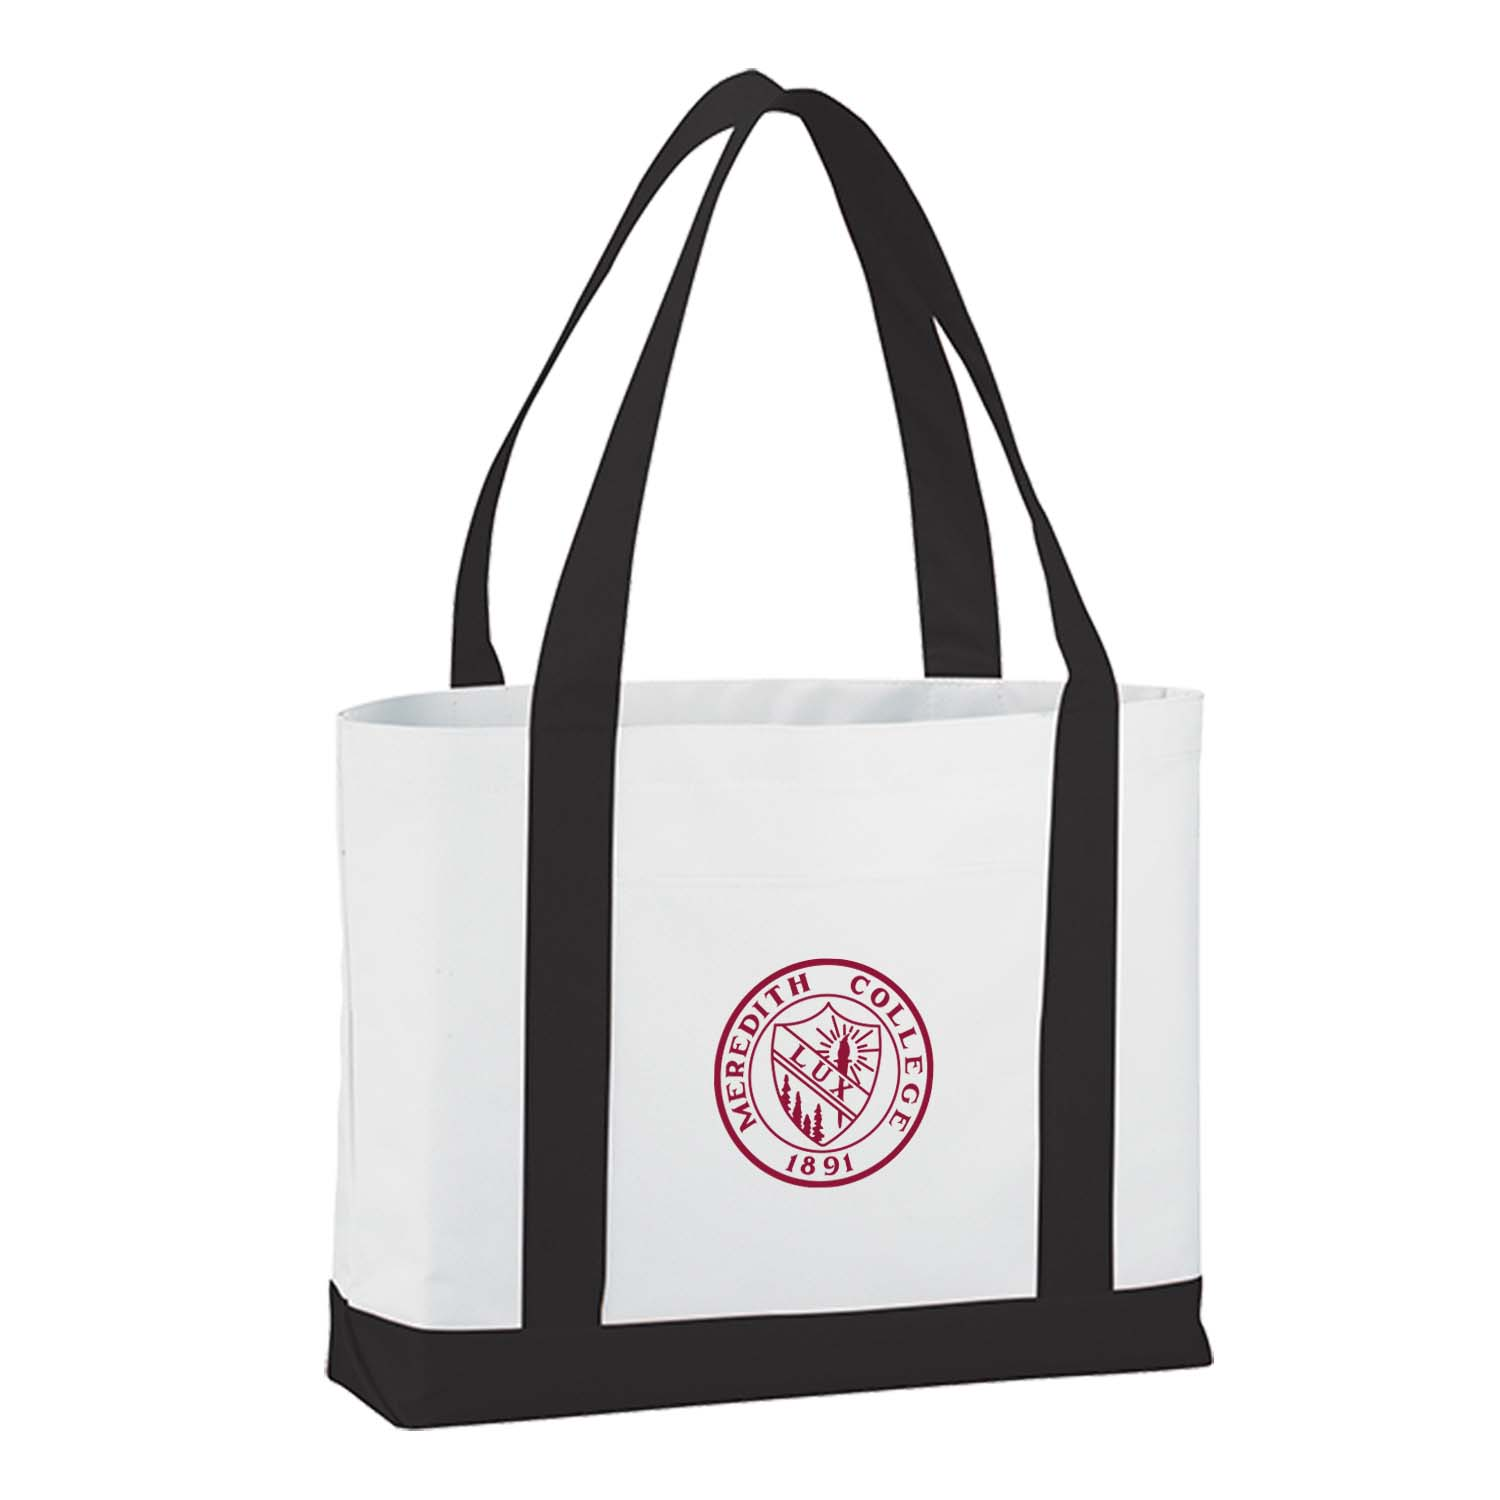 Image for the Lightweight Tote, Black with Maroon Seal product